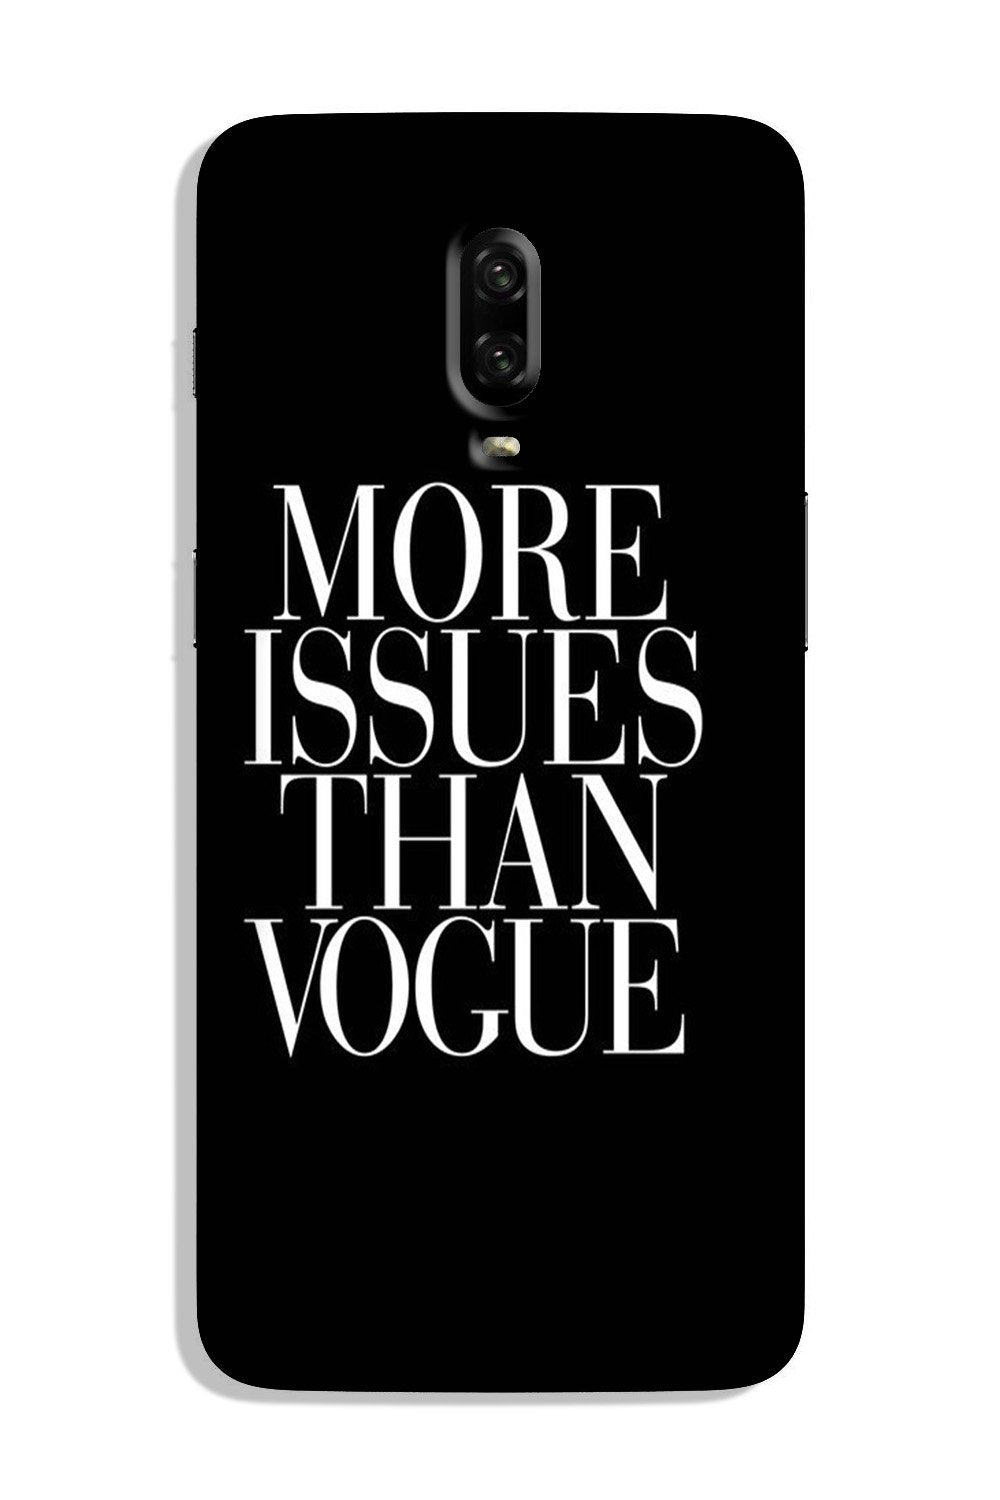 More Issues than Vague Case for OnePlus 7